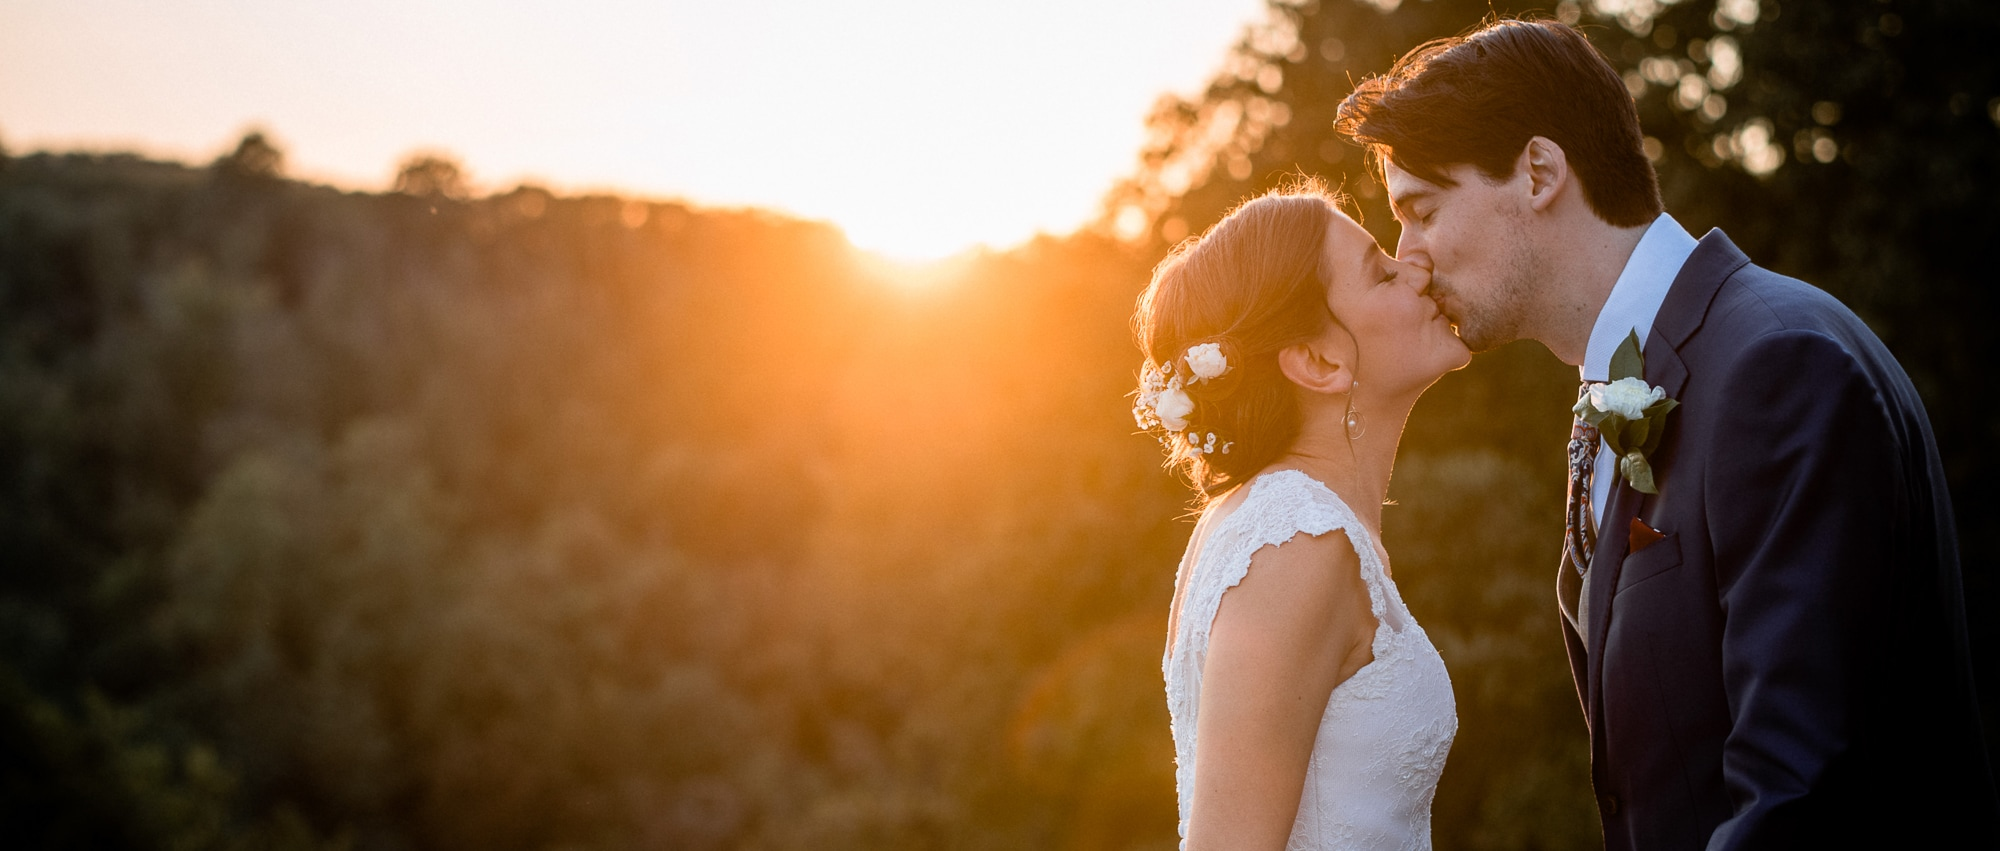 Catching Sunsets / A Boho Destination Wedding in Italy